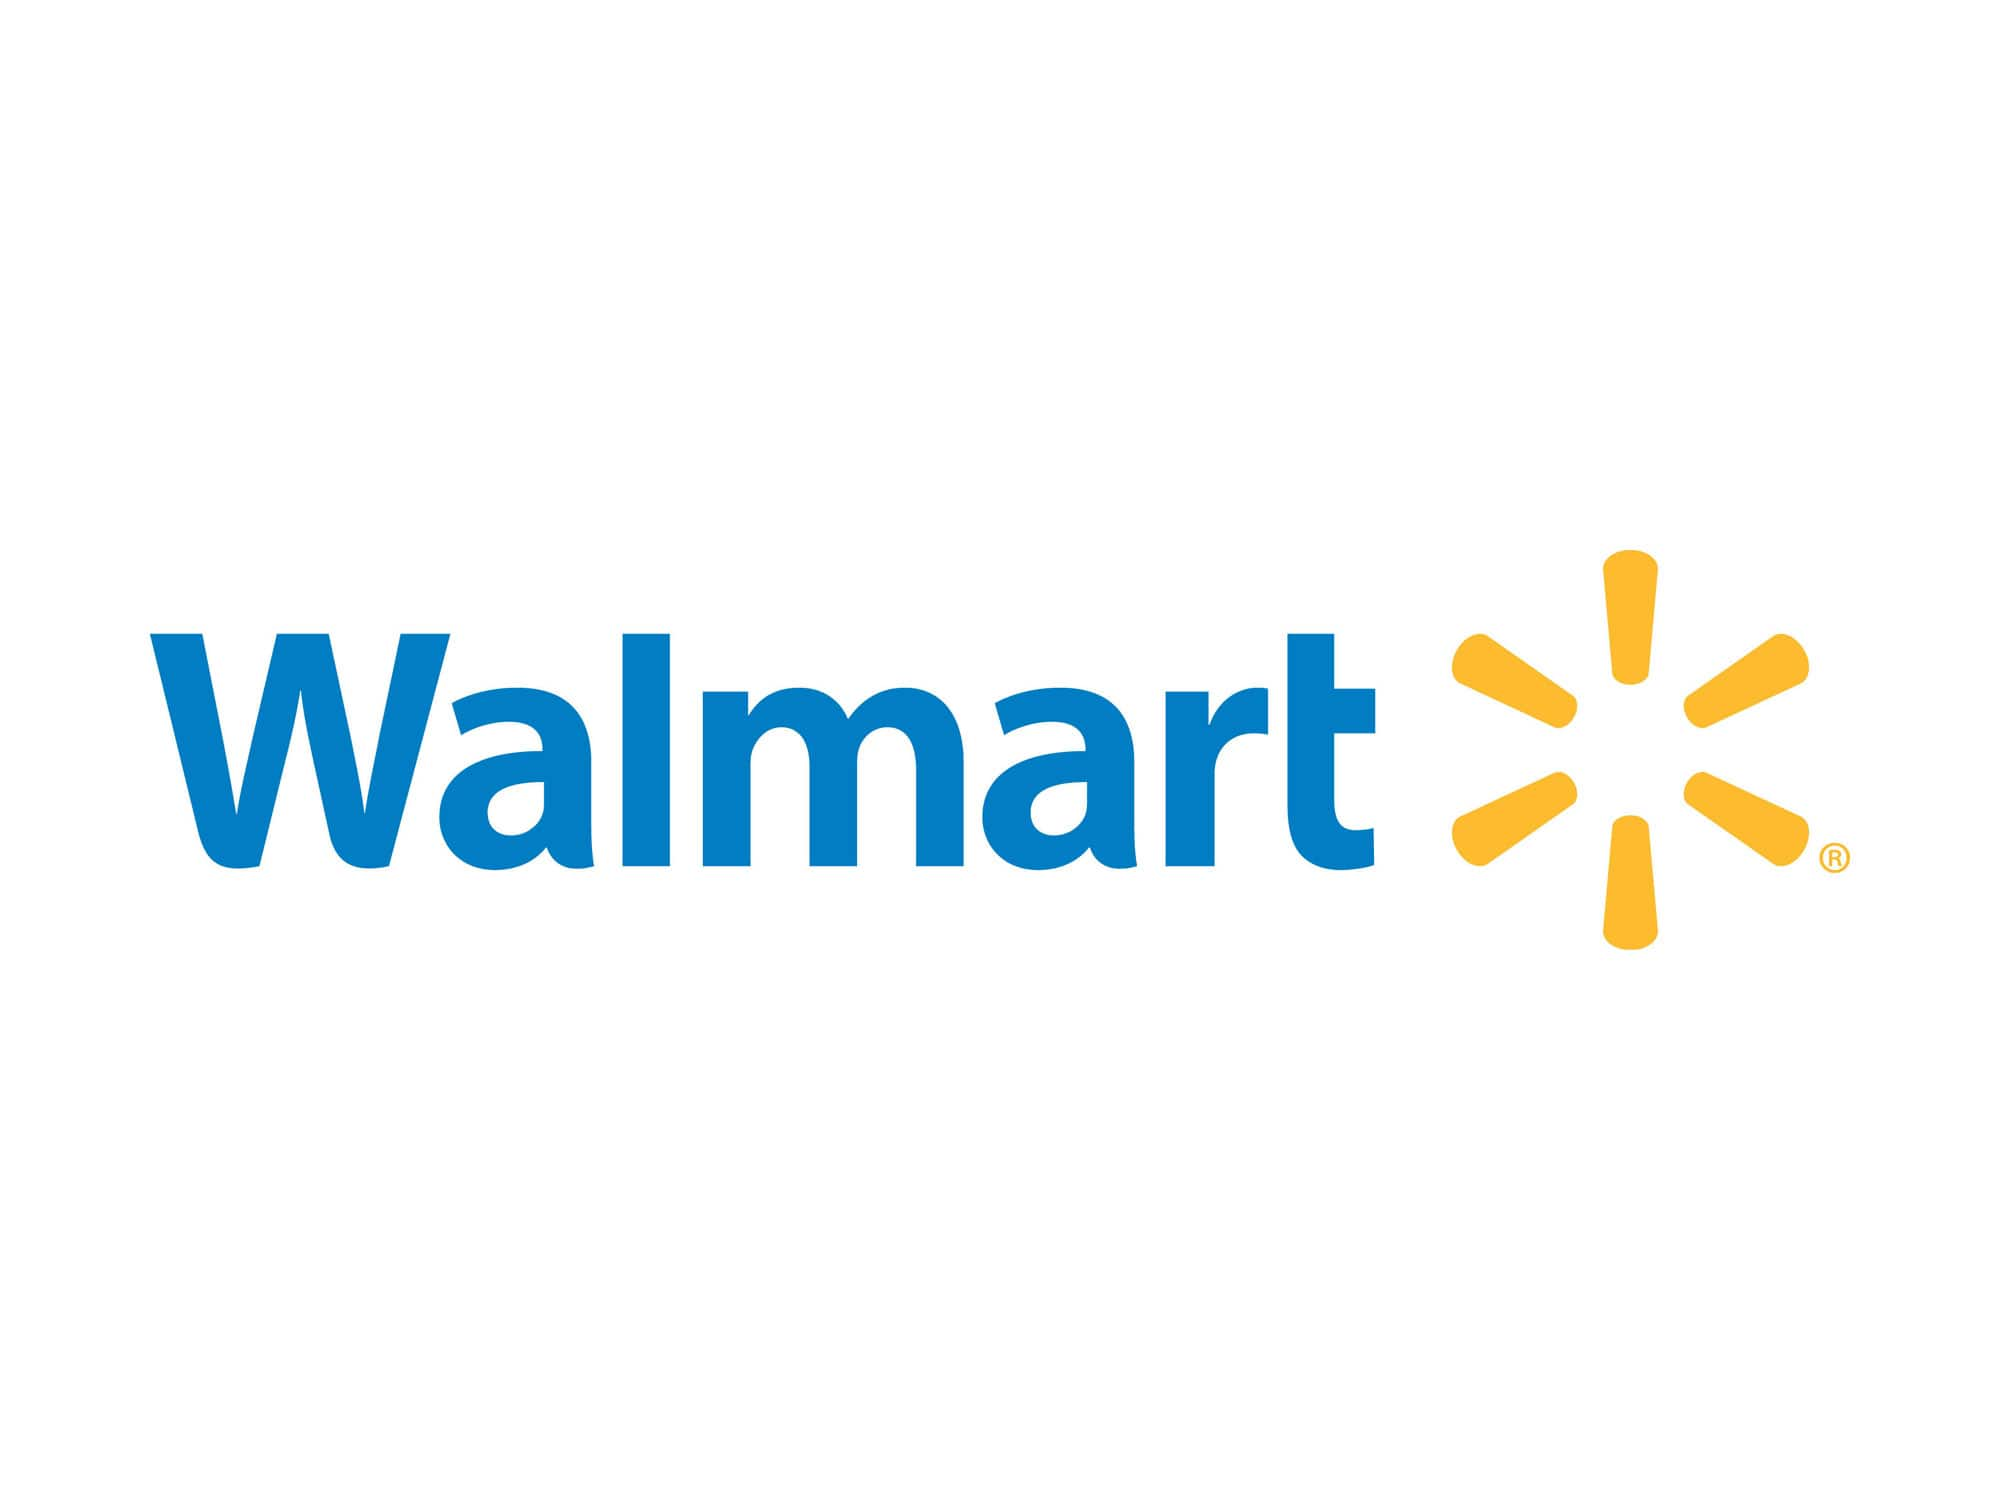 Check your emails for Walmart Sales Tax settlement $15 e t card